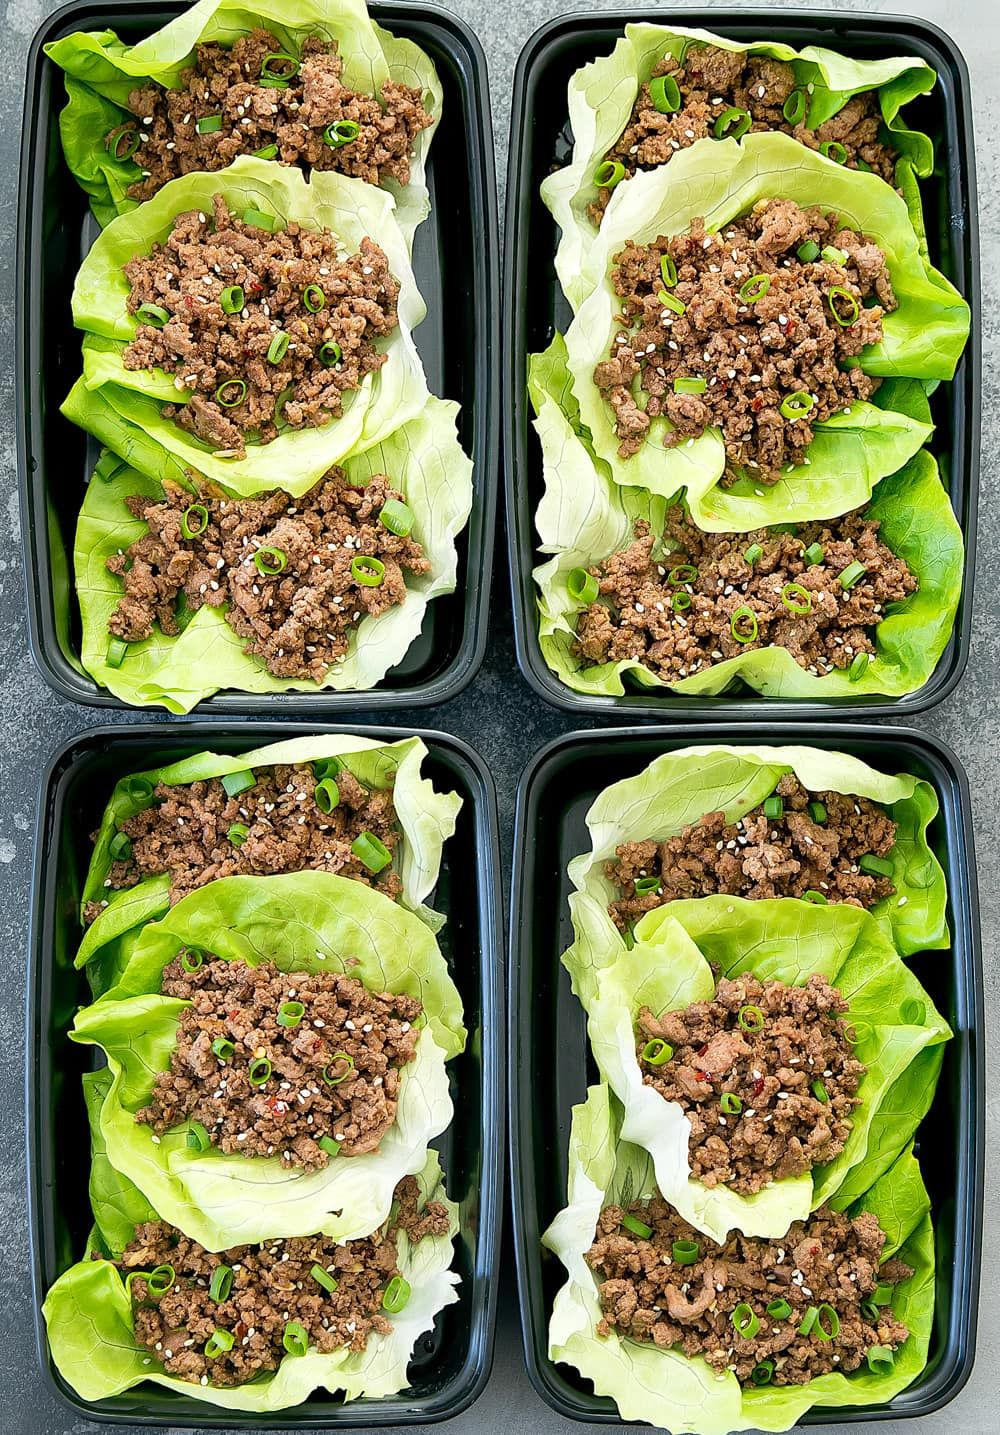 Easy Korean Beef Lettuce Wraps Kirbie S Cravings Recipe Beef Lettuce Wraps Healthy Ground Beef Lettuce Wraps Ground Beef